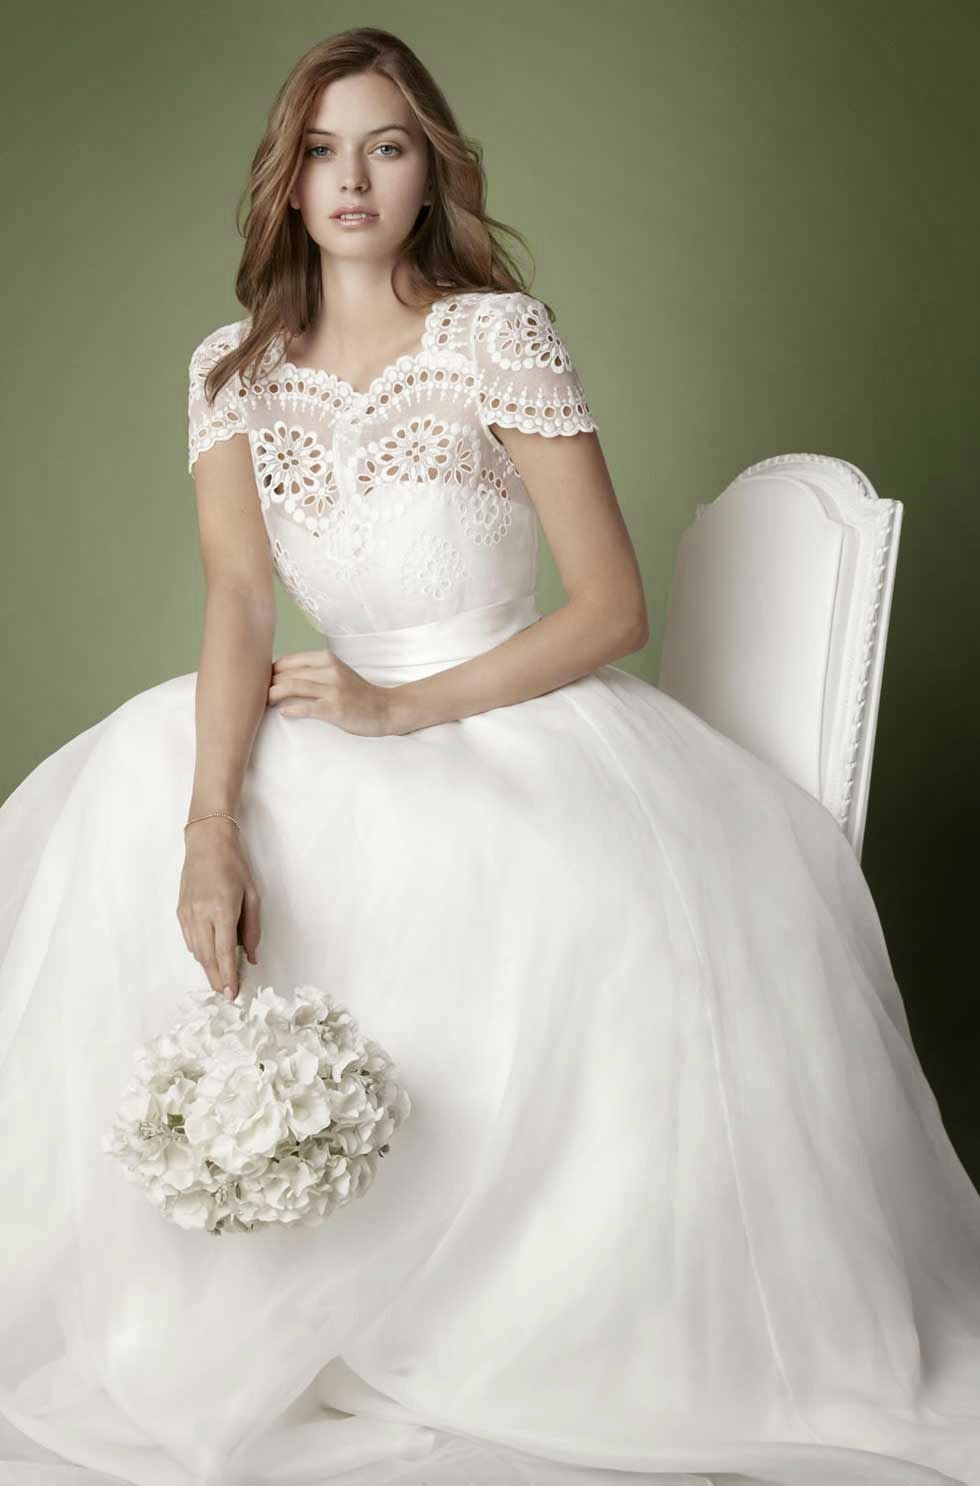 Vintage Wedding Dress With Sleeves Ideas Photos HD